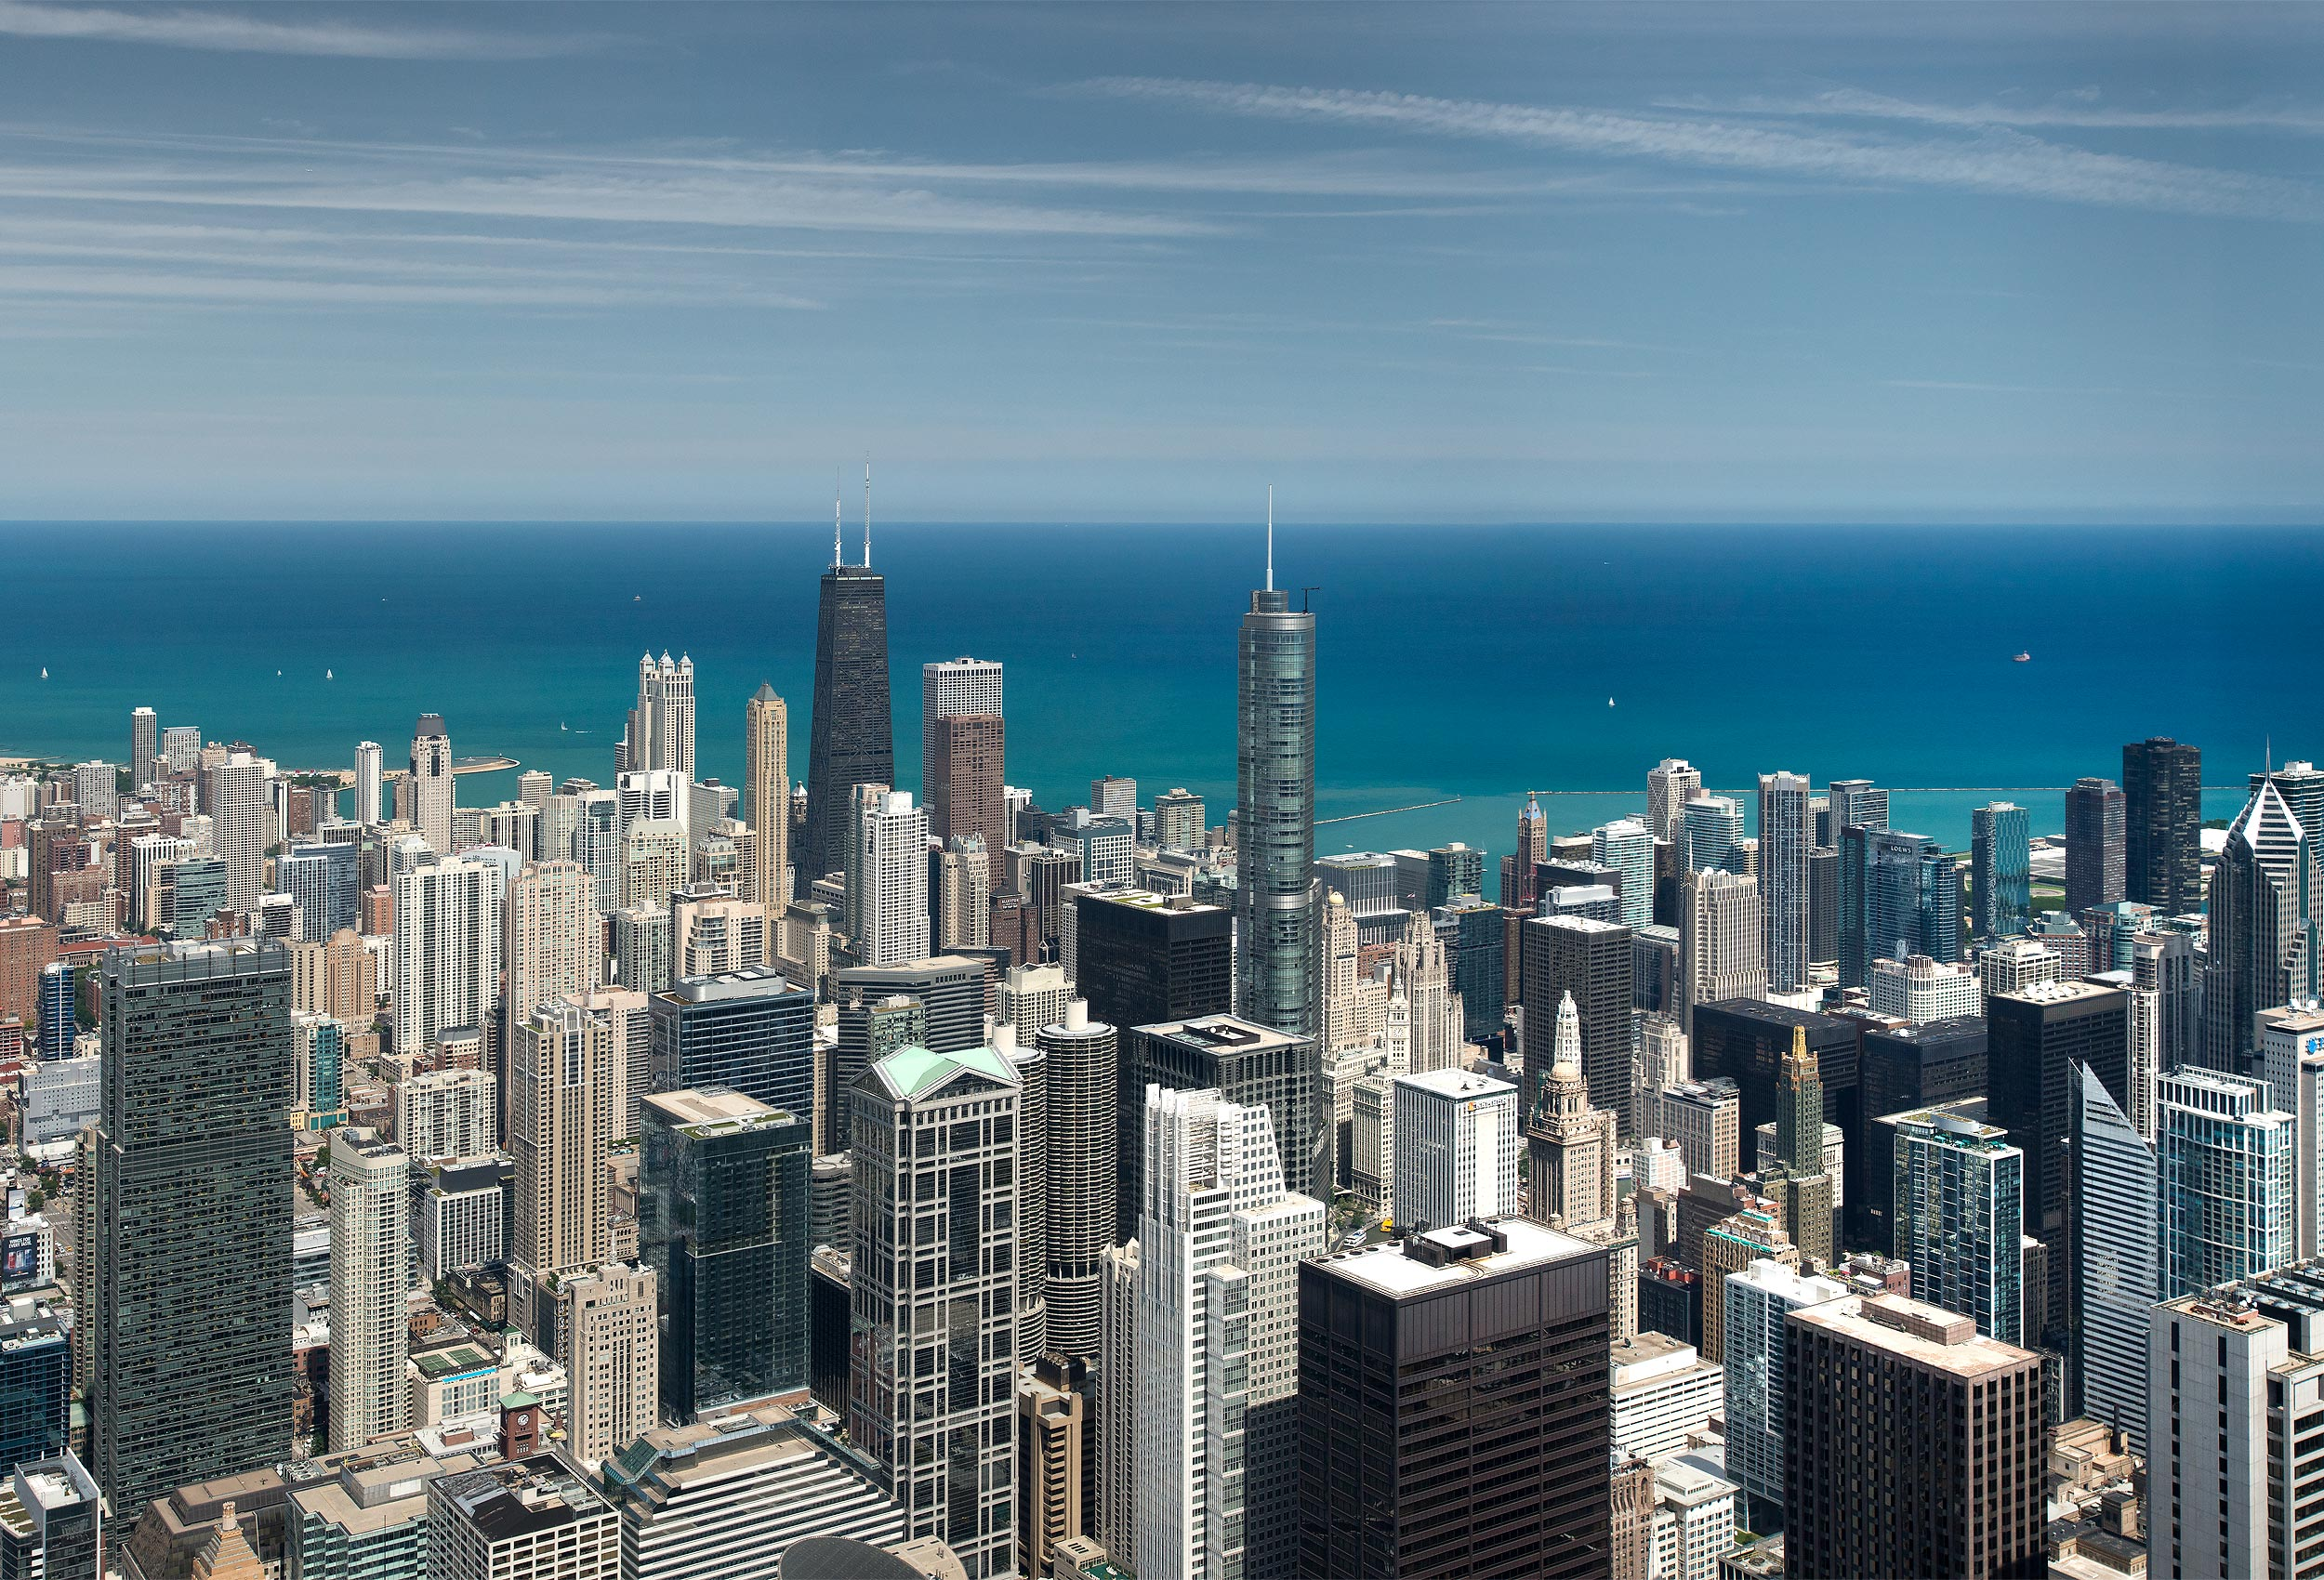 Chicago by cityscape photographer Kristopher Grunert